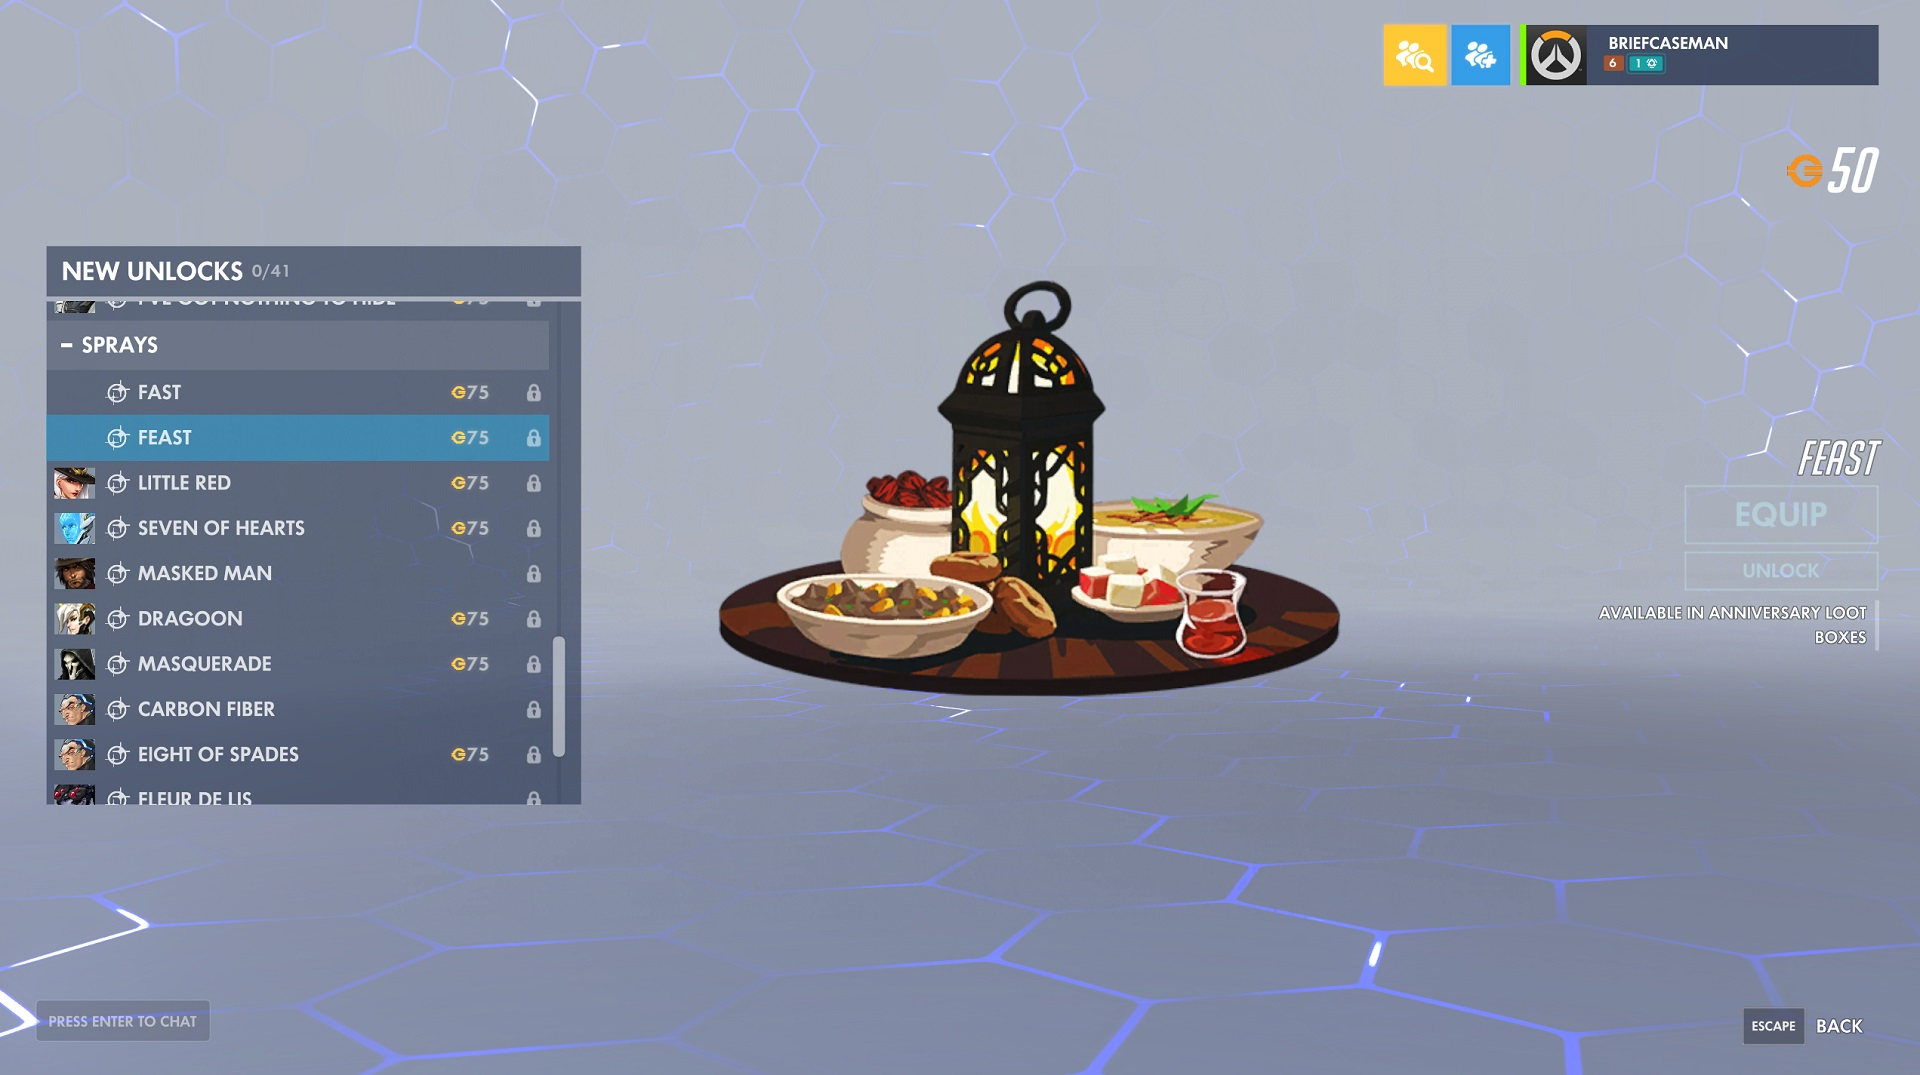 Overwatch added Fast and Feast Sprays to the game in its Anniverary update.